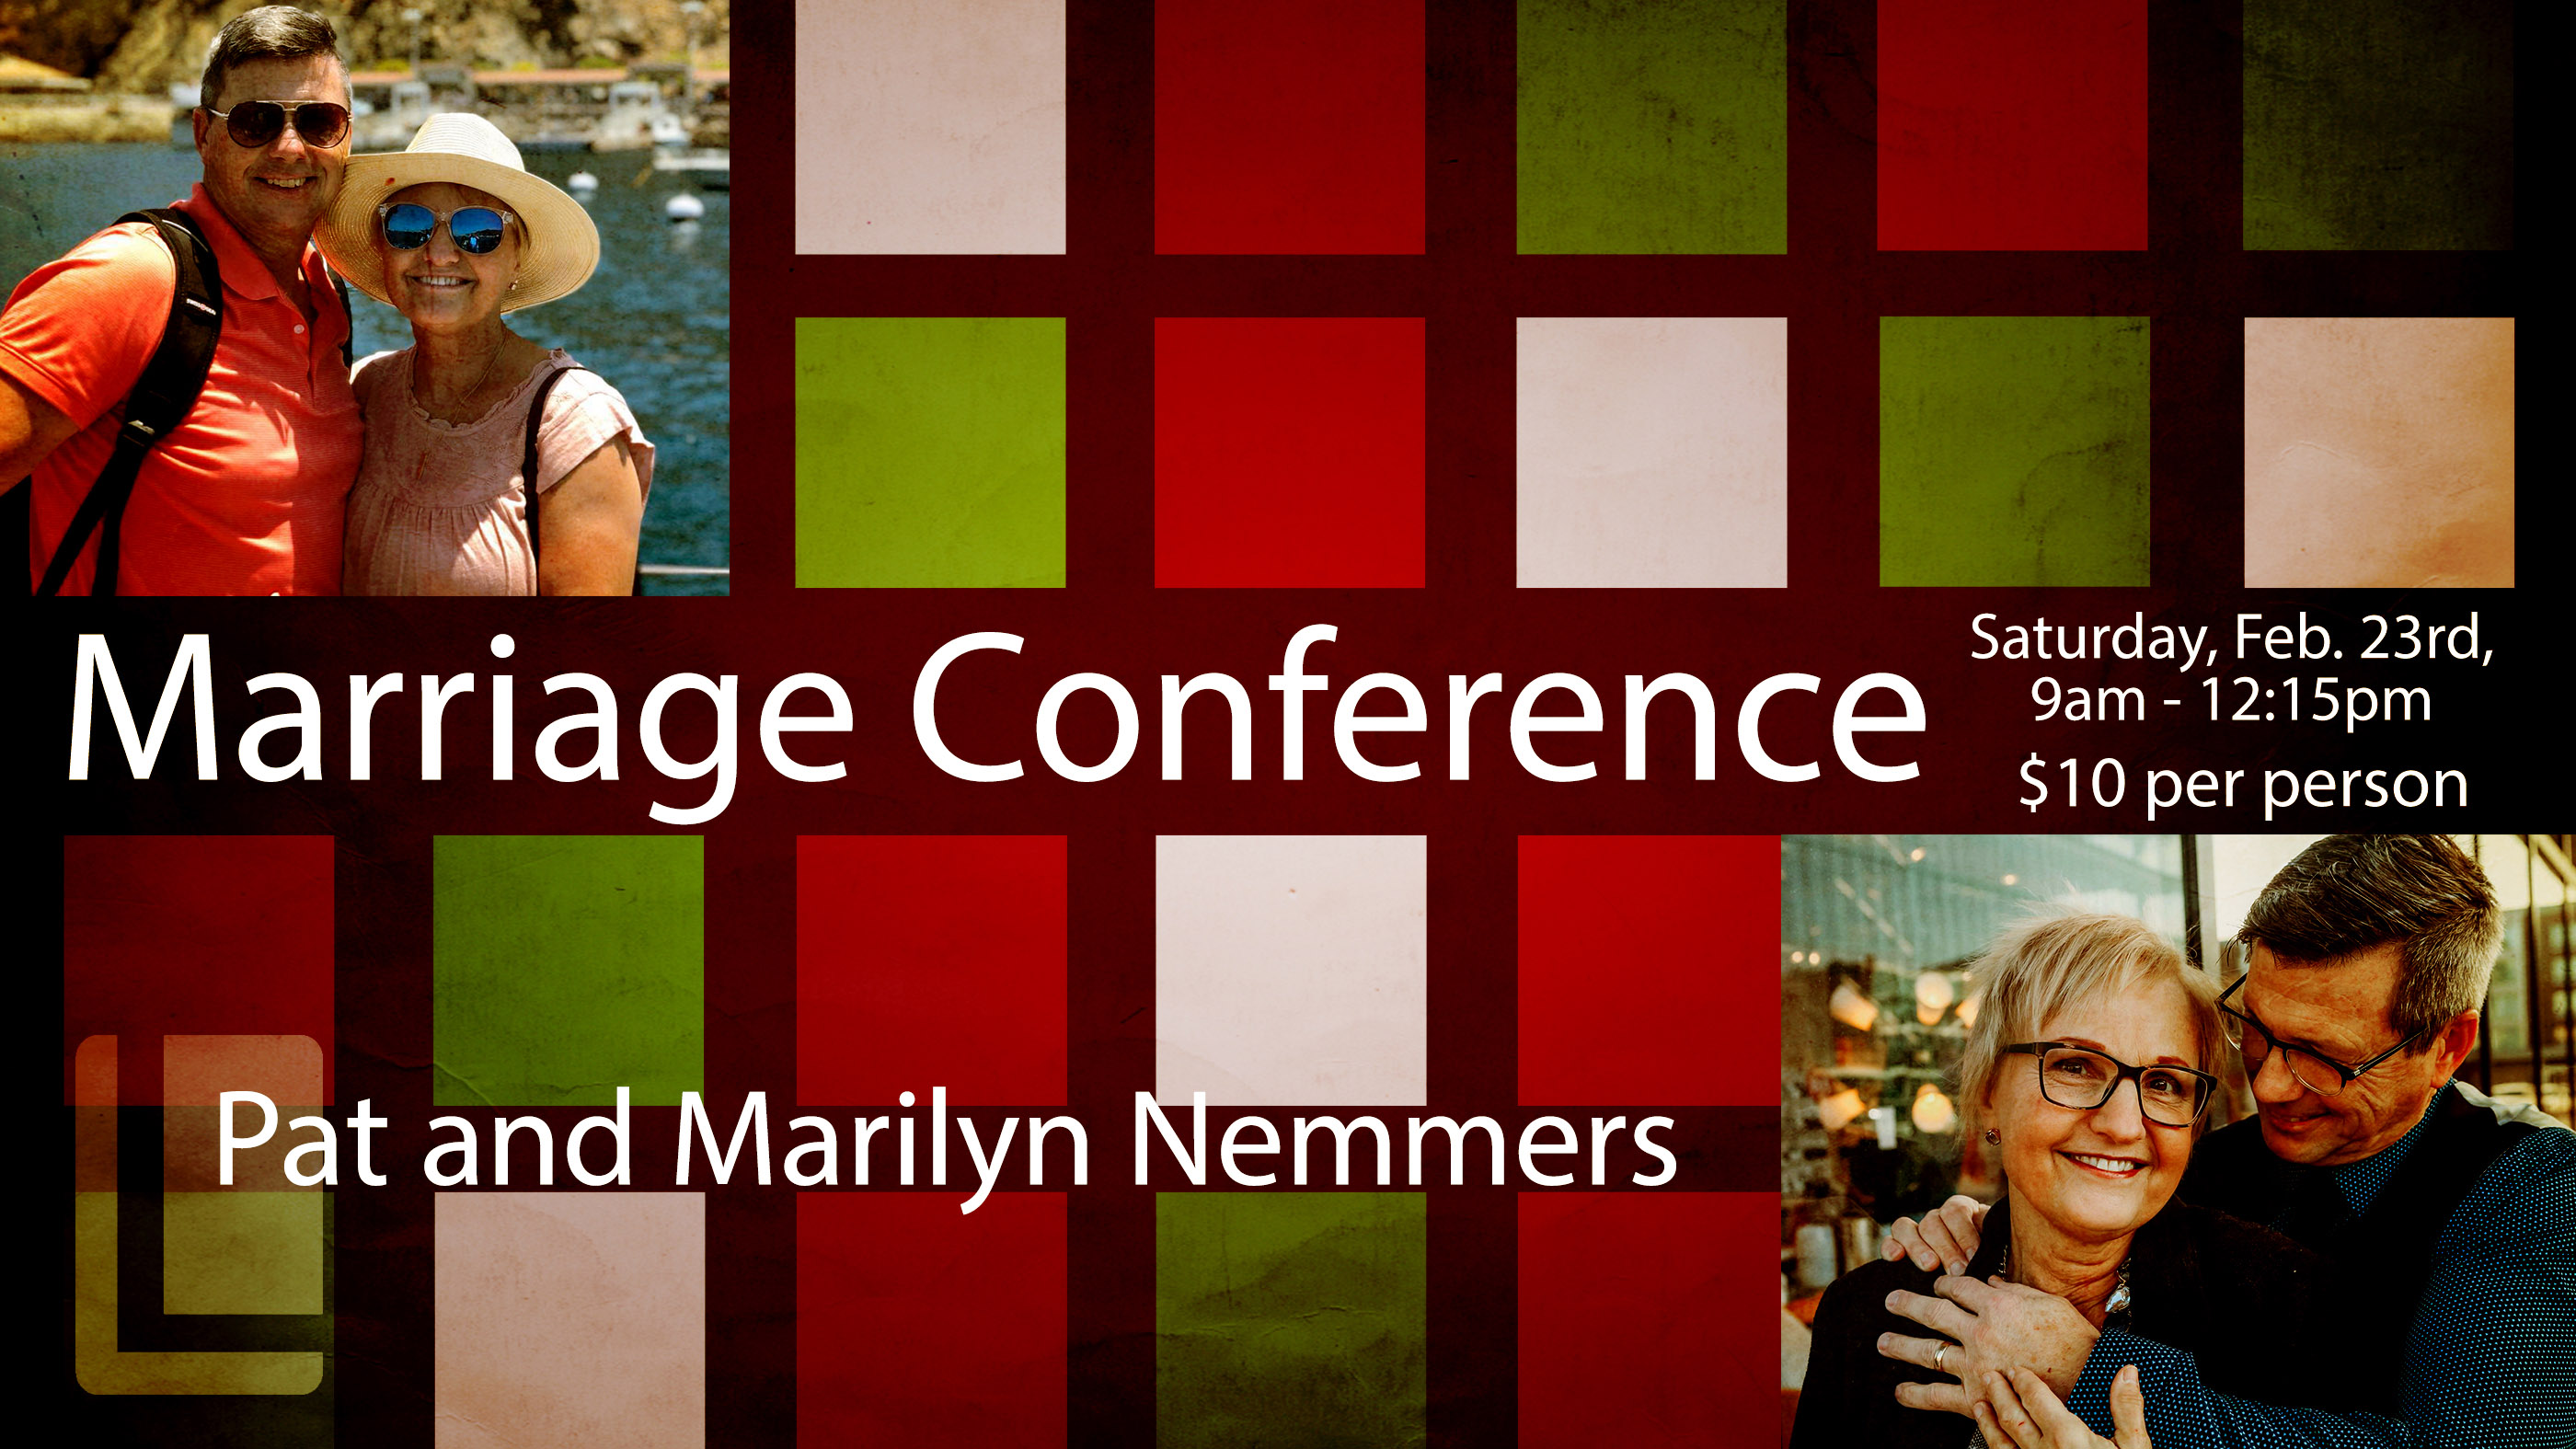 Marriage Conference logo